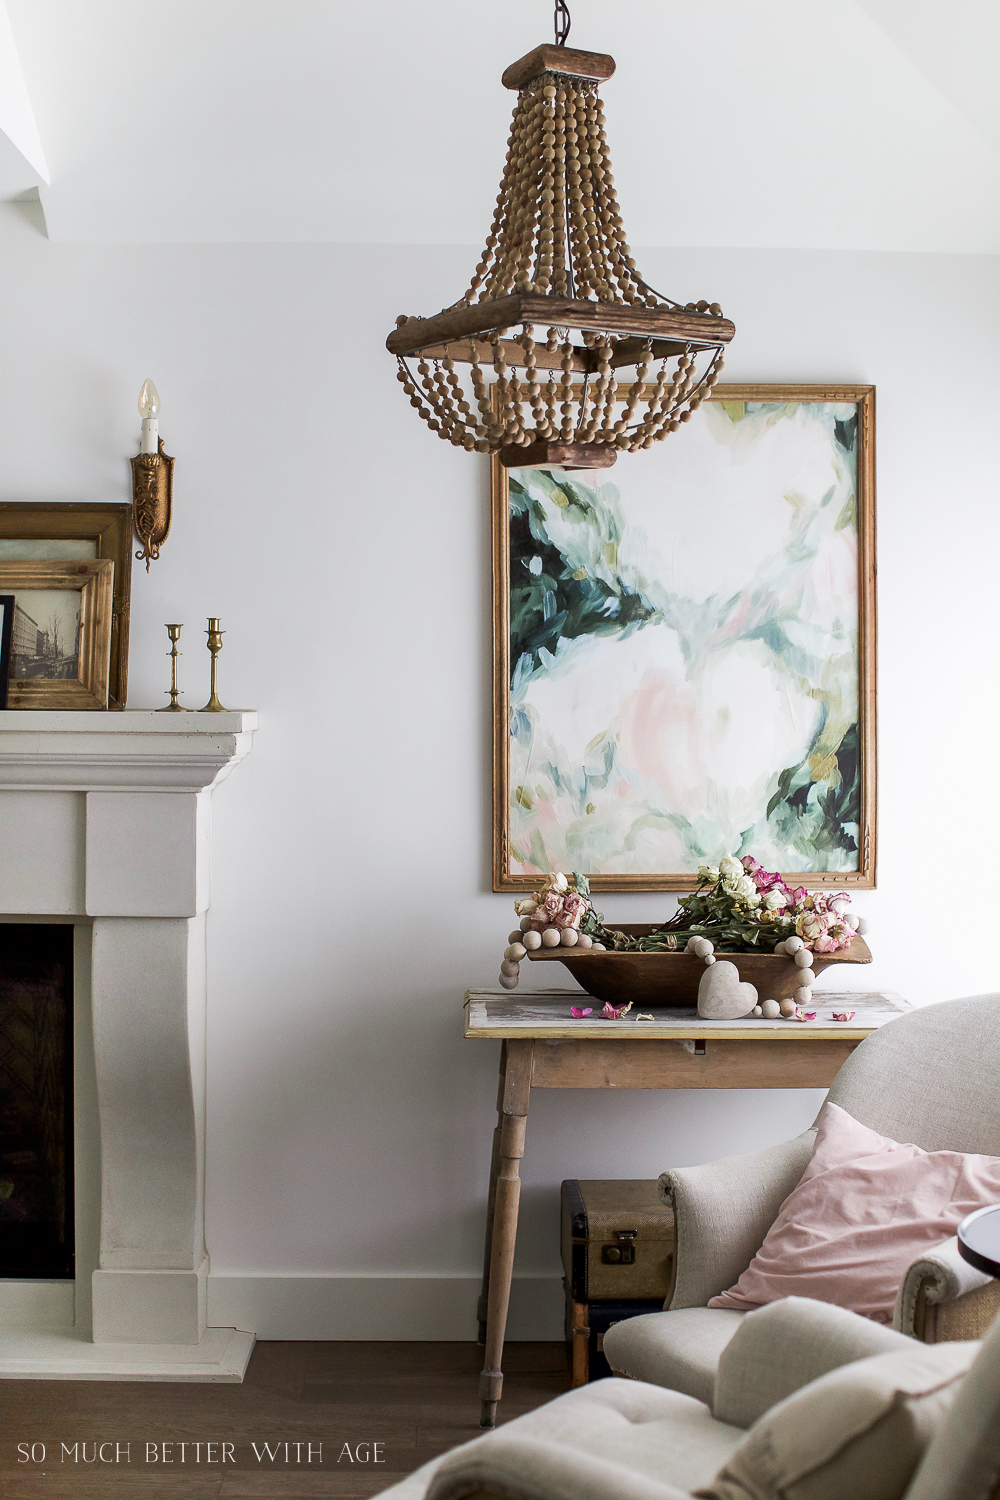 So Much Better With Age - How to Choose Art with a French Vintage Vibe